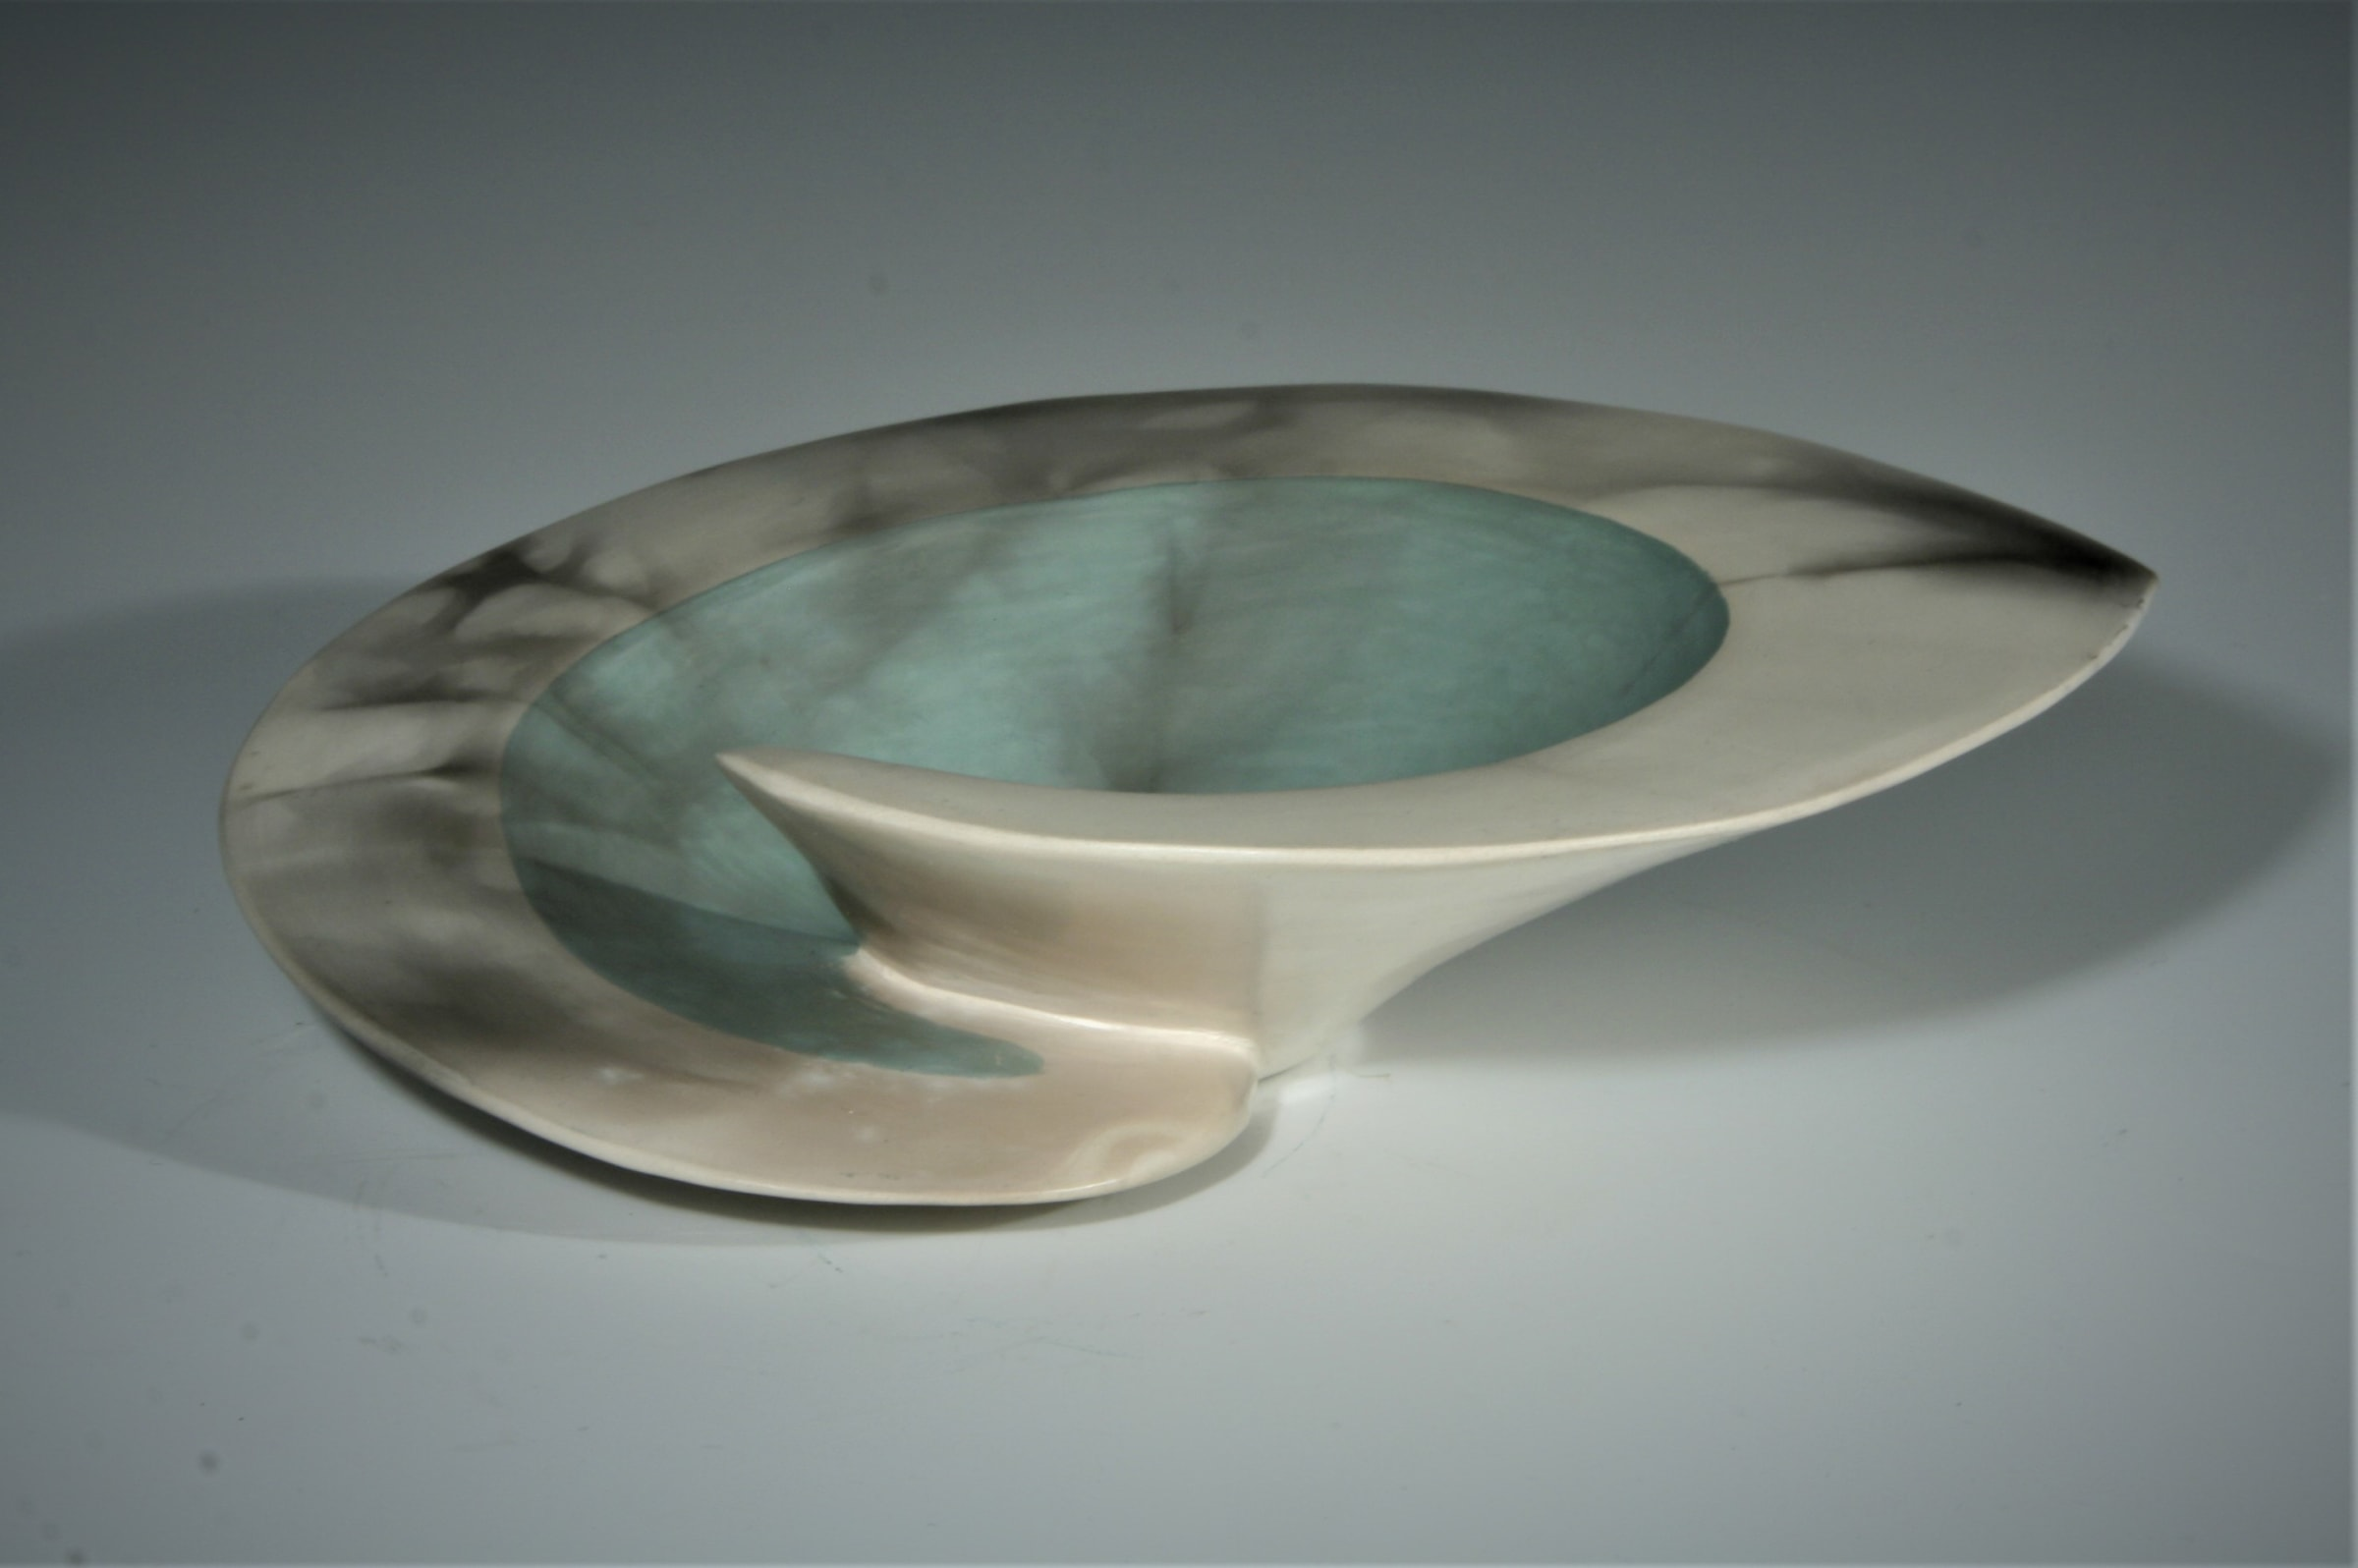 """<span class=""""link fancybox-details-link""""><a href=""""/artists/38-antonia-salmon/works/5694-antonia-salmon-green-dervish-bowl-ii-2018/"""">View Detail Page</a></span><div class=""""artist""""><strong>Antonia Salmon</strong></div> b. 1959 <div class=""""title""""><em>Green Dervish Bowl II</em>, 2018</div> <div class=""""signed_and_dated"""">stamped AS</div> <div class=""""medium"""">Ceramic</div><div class=""""copyright_line"""">£ 21 x 10 Months, OwnArt 0% APR</div>"""